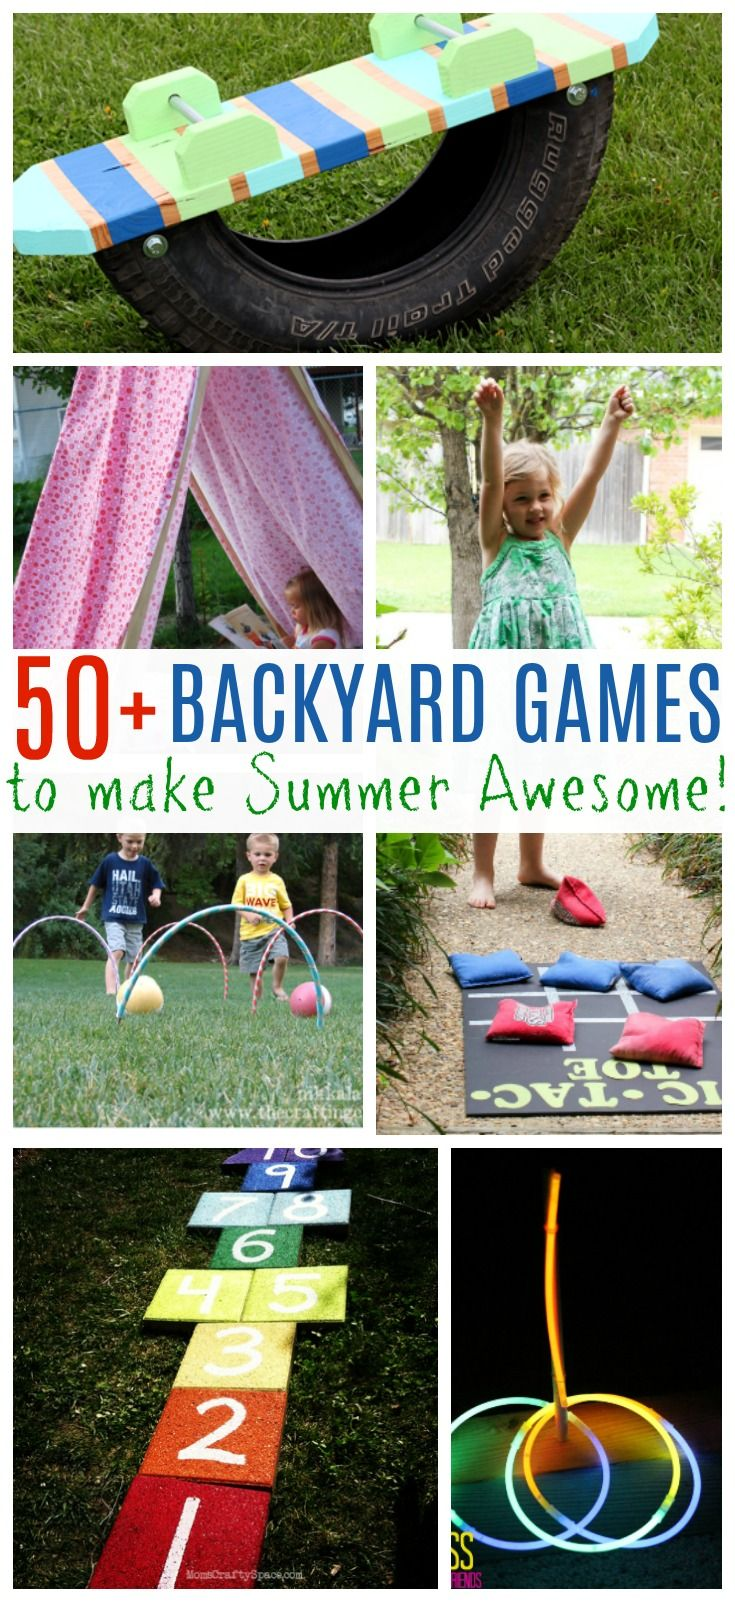 If you're looking for some fun family games that you can play in your own backyard, then this kid-friendly list of summer boredom buster activities that you can really do all year long has it all. These are the perfect party games for BBQs, fourth of July